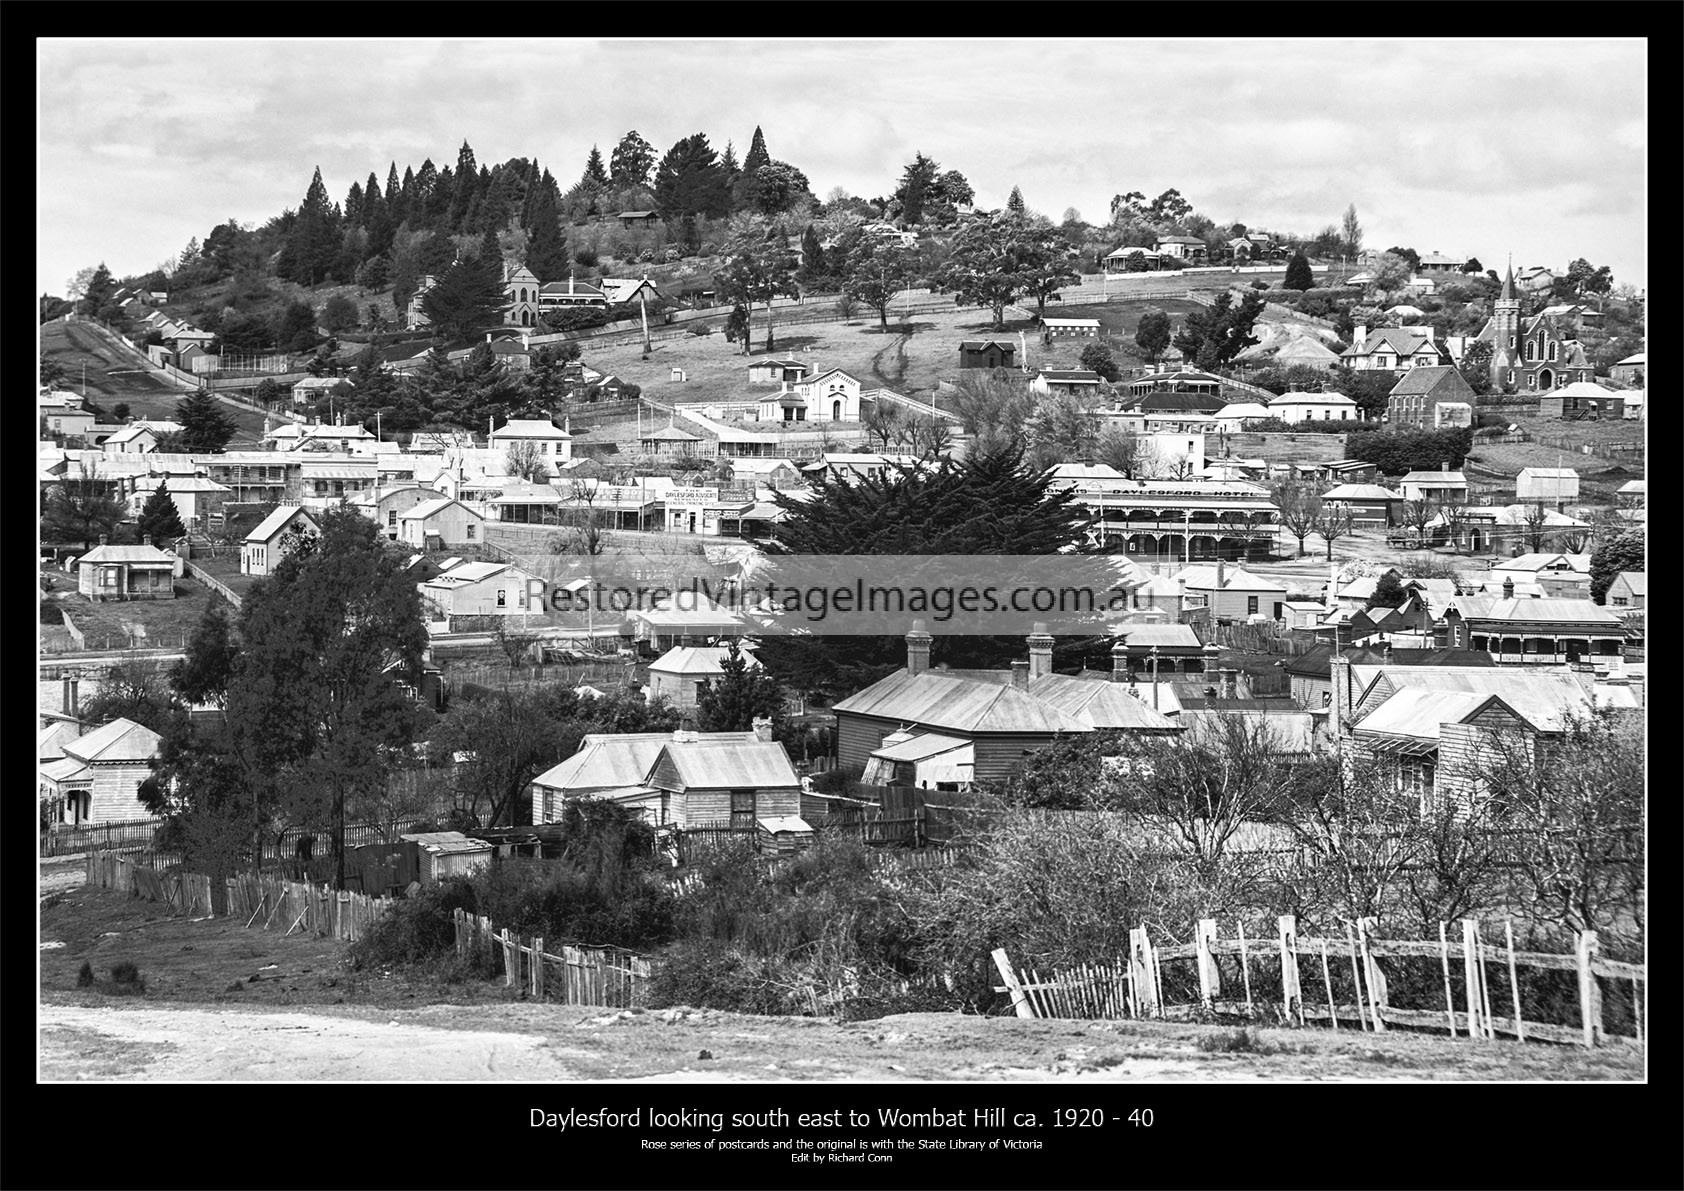 Daylesford Looking Towards Wombat Hill Ca. 1920 – 40